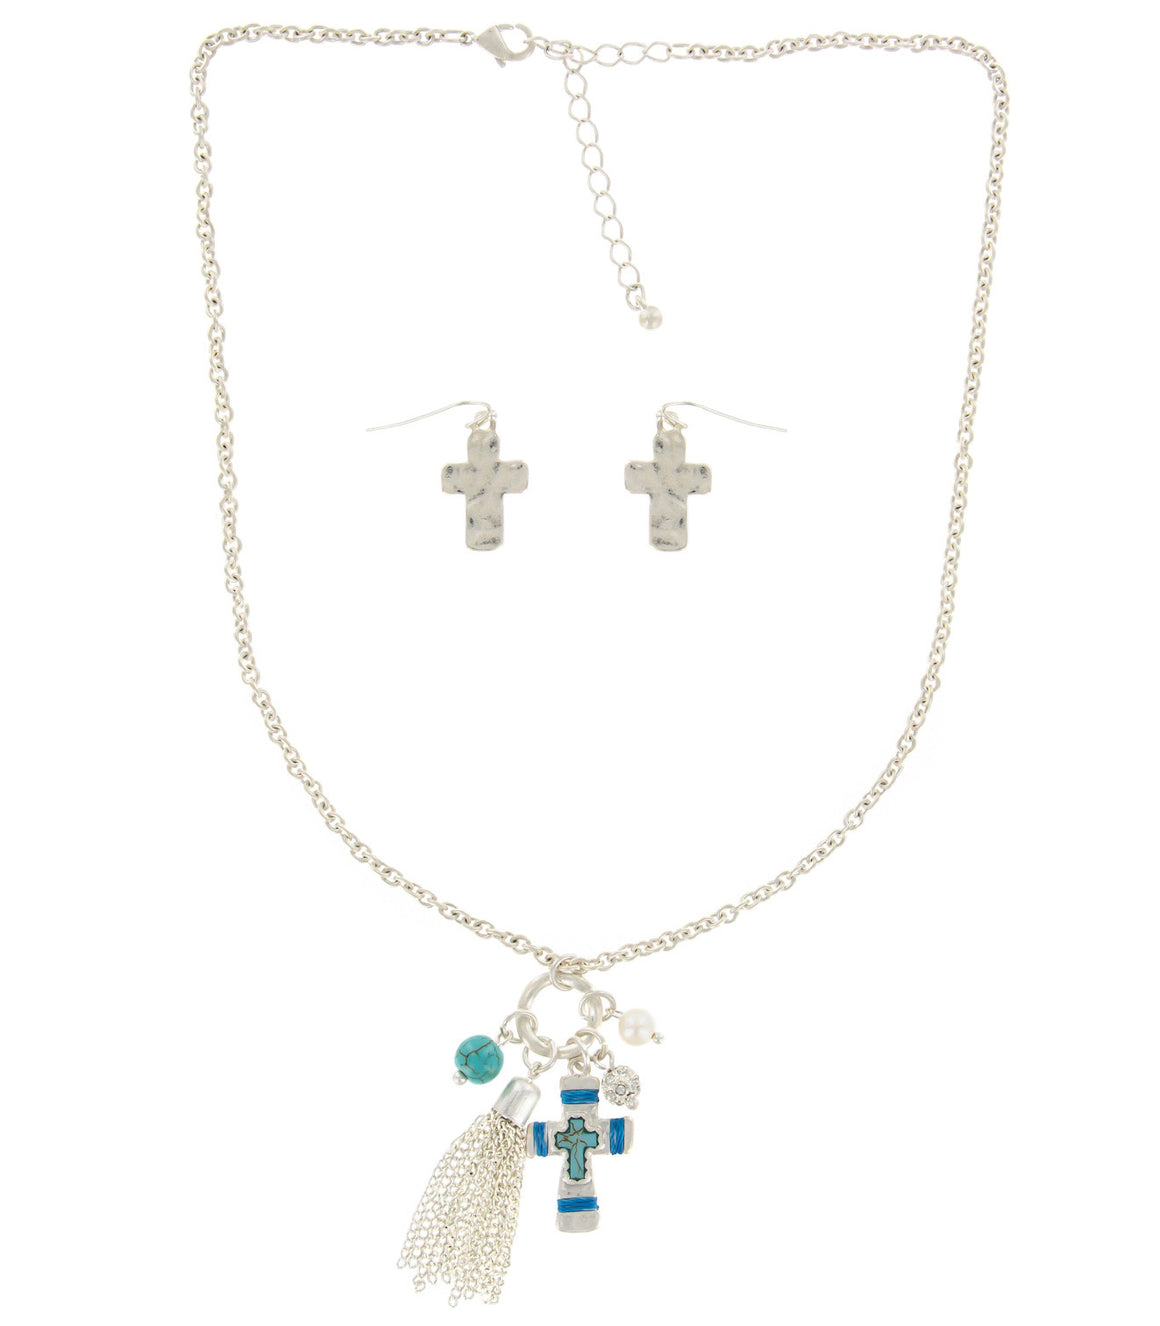 Southwestern cross necklace.